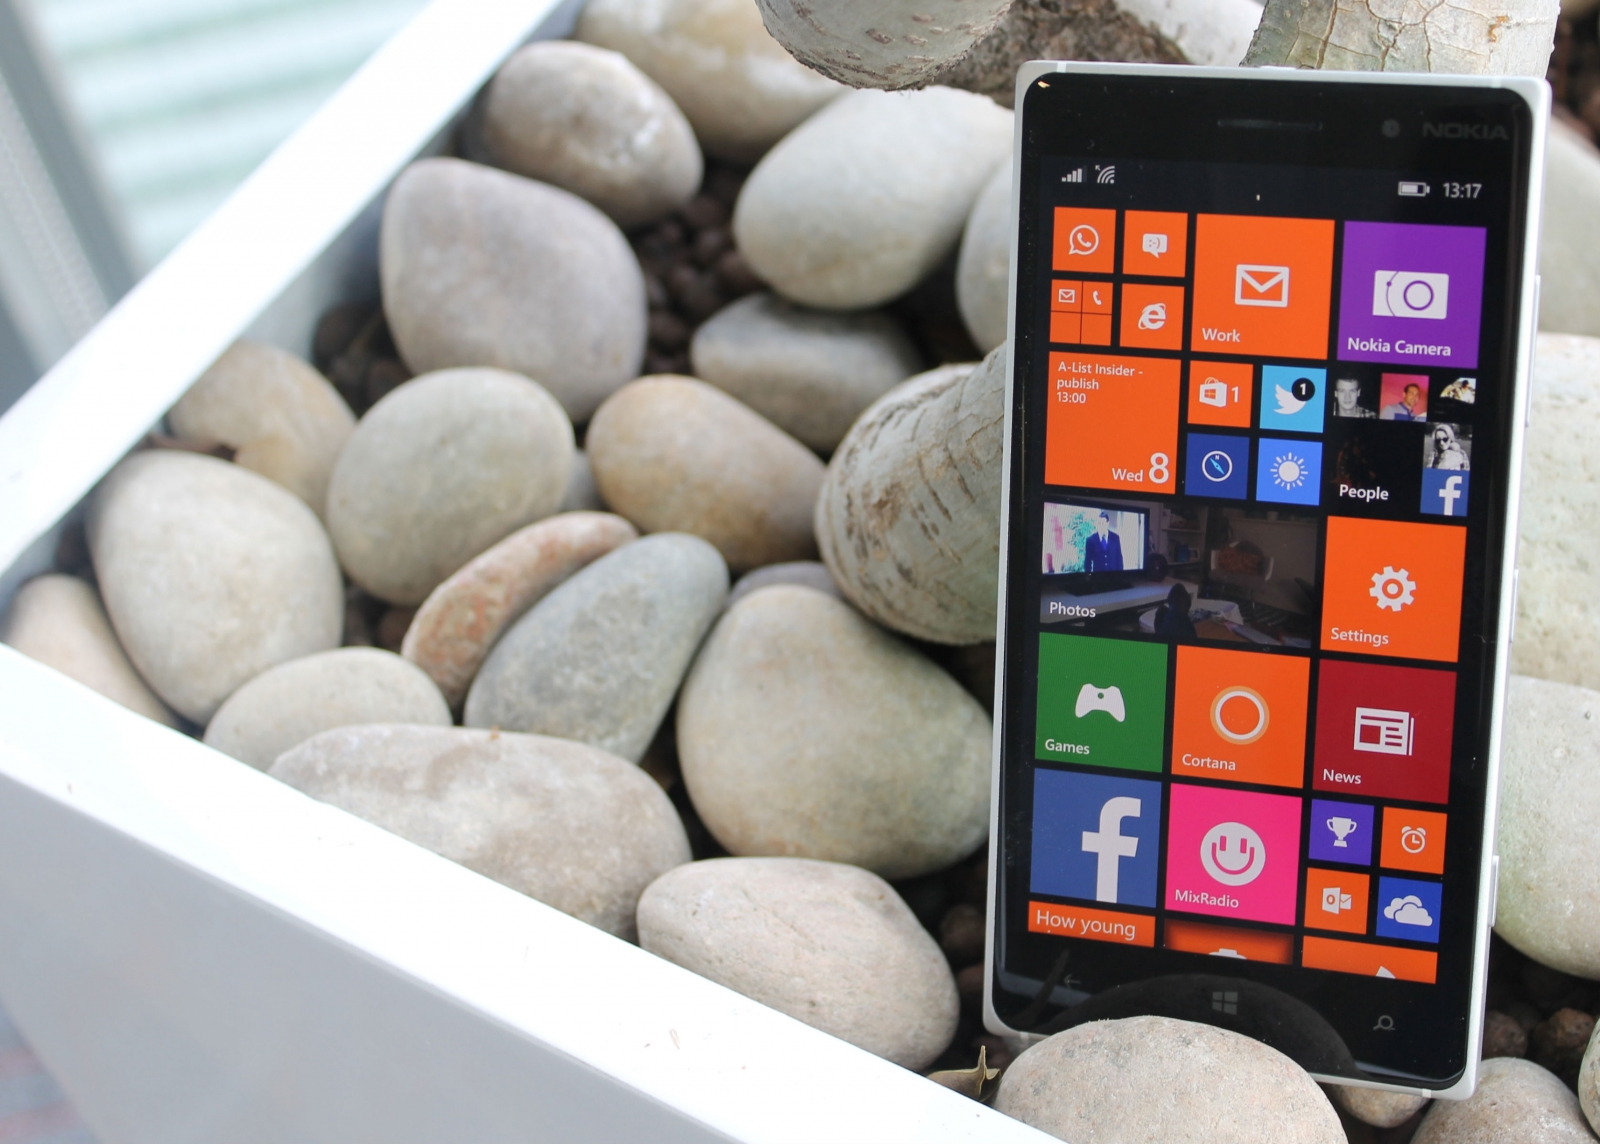 Nokia Lumia 830 Review